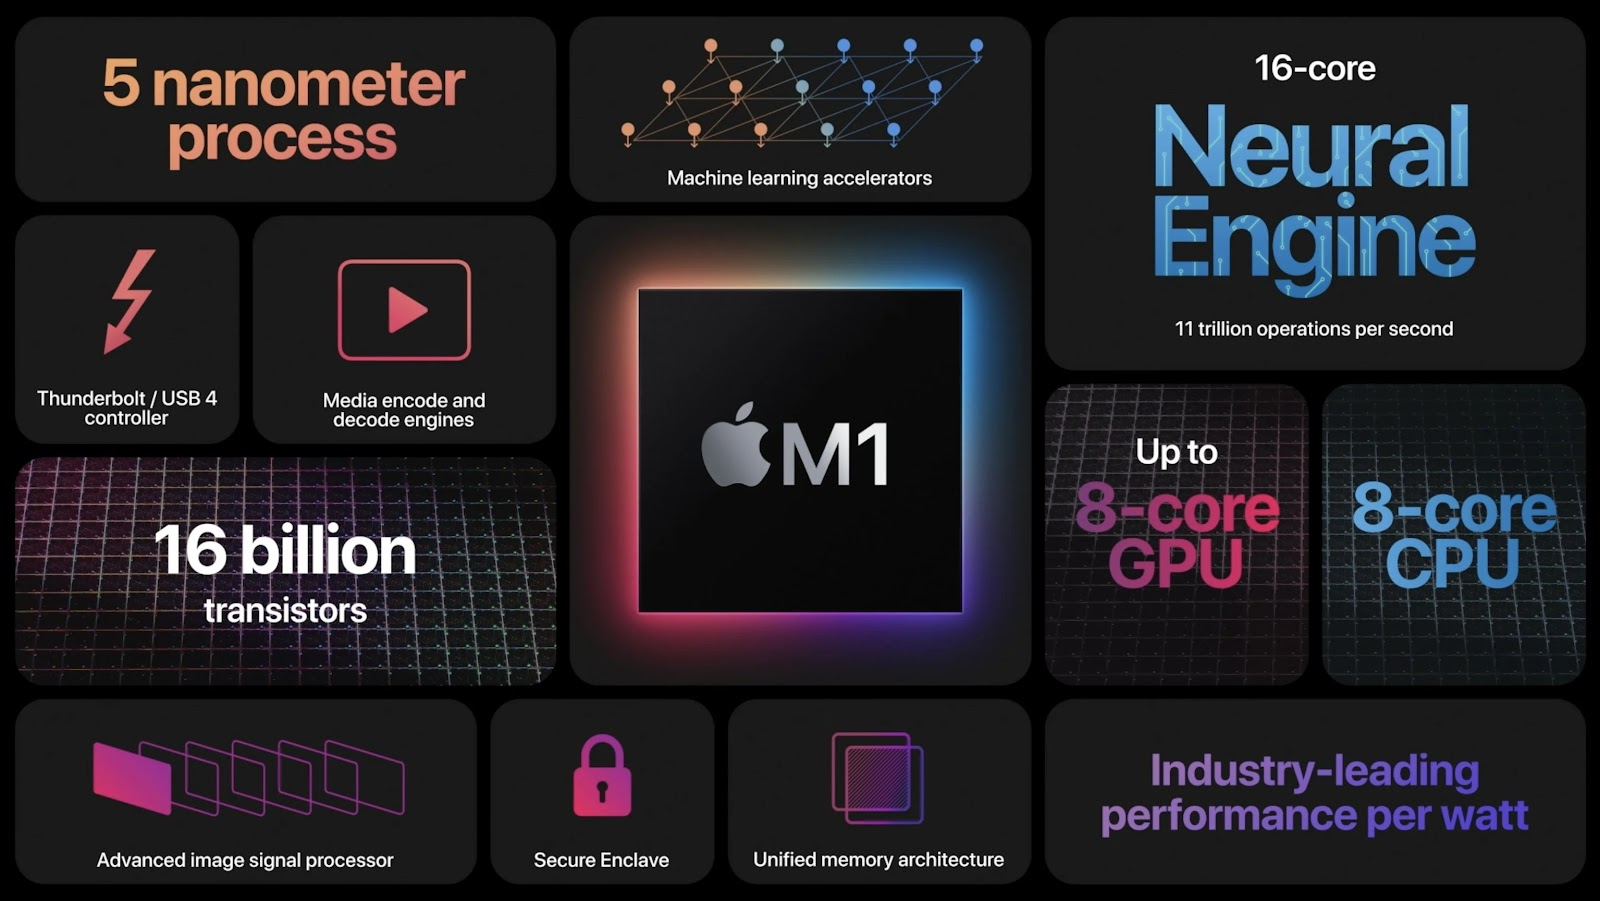 The big Announcements from Apple at its 'One more thing' event